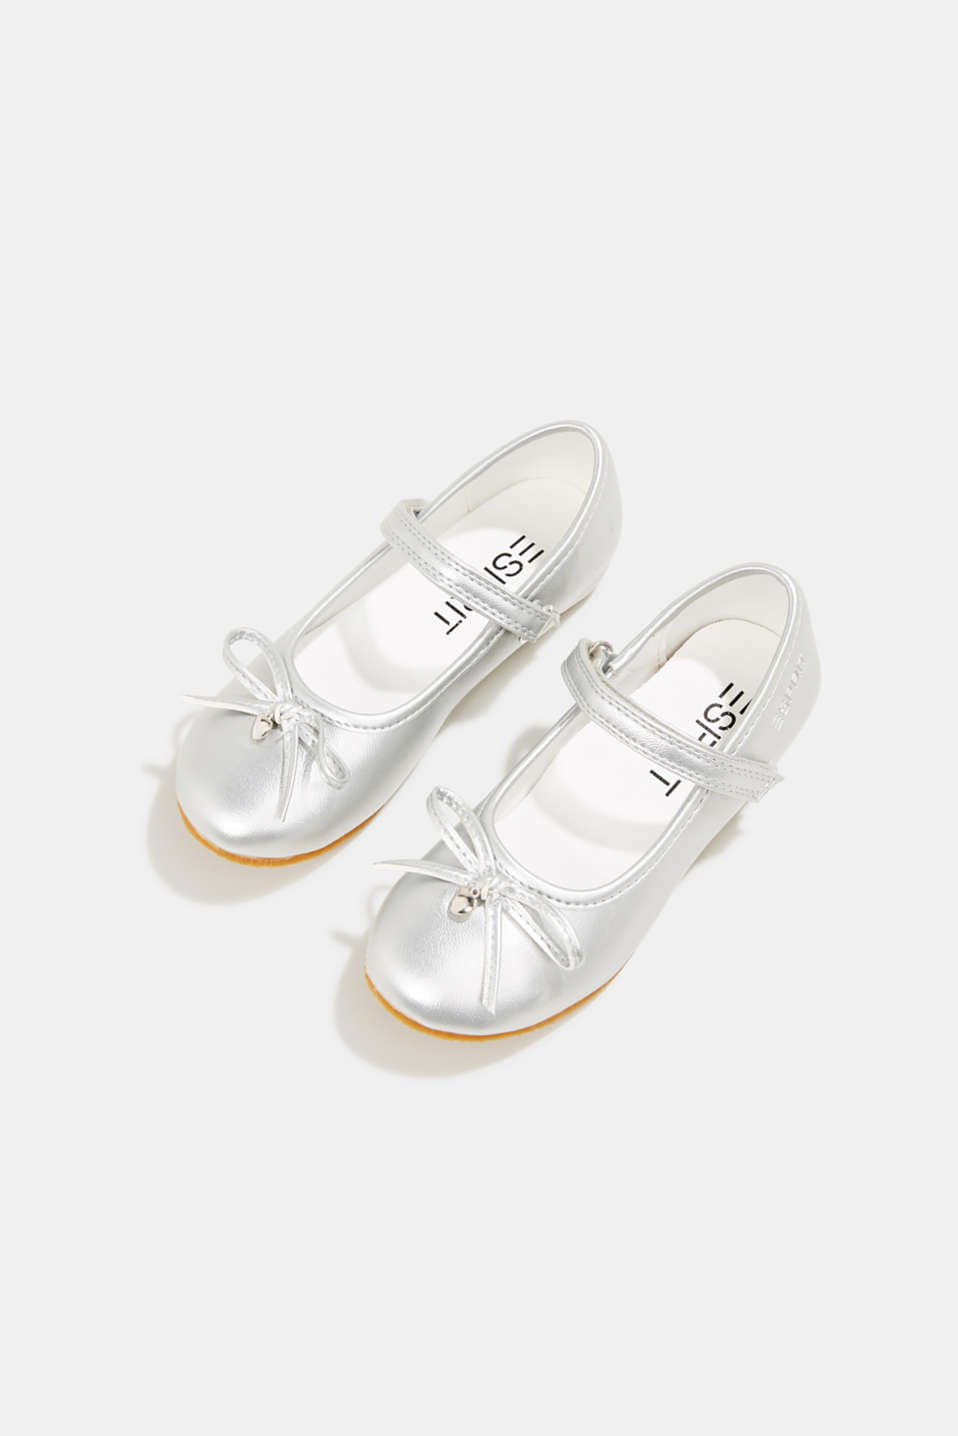 Ballerinas with Velcro straps, in faux leather, SILVER, detail image number 1